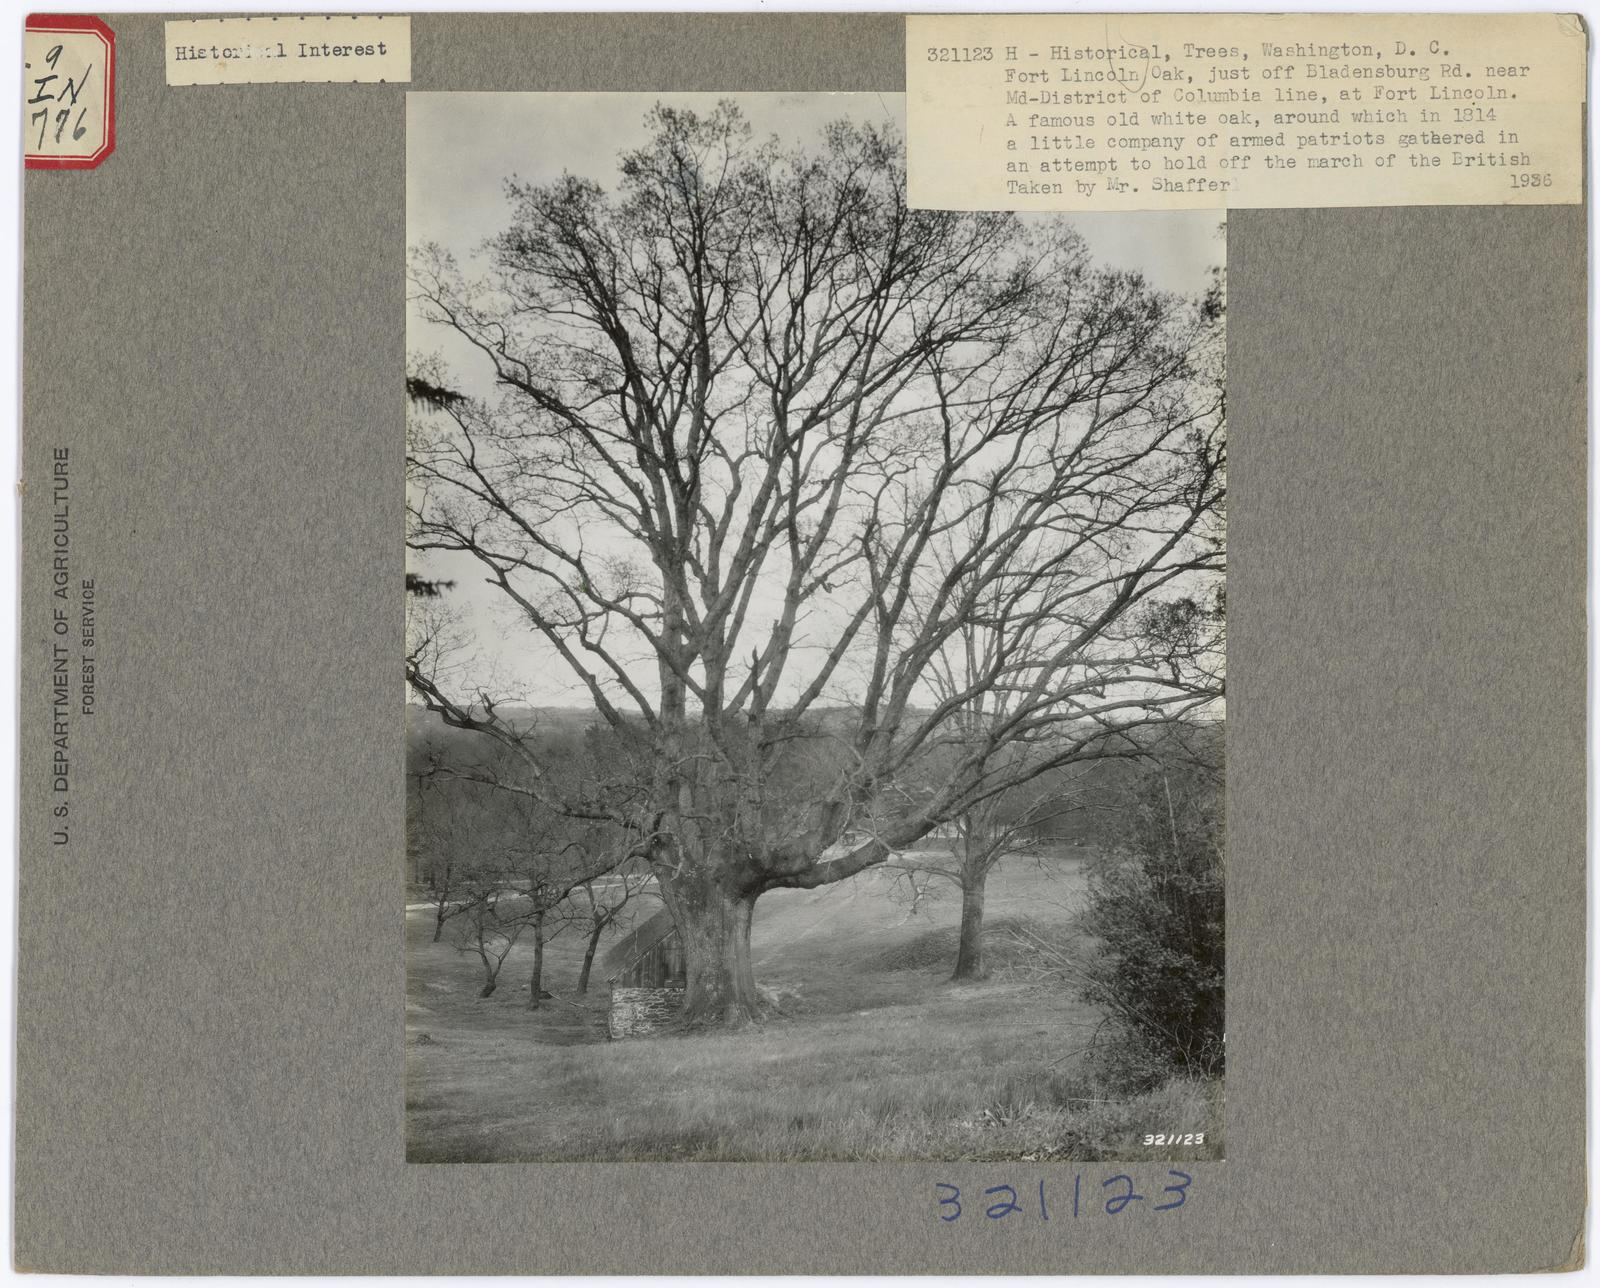 Historical Trees - District of Columbia